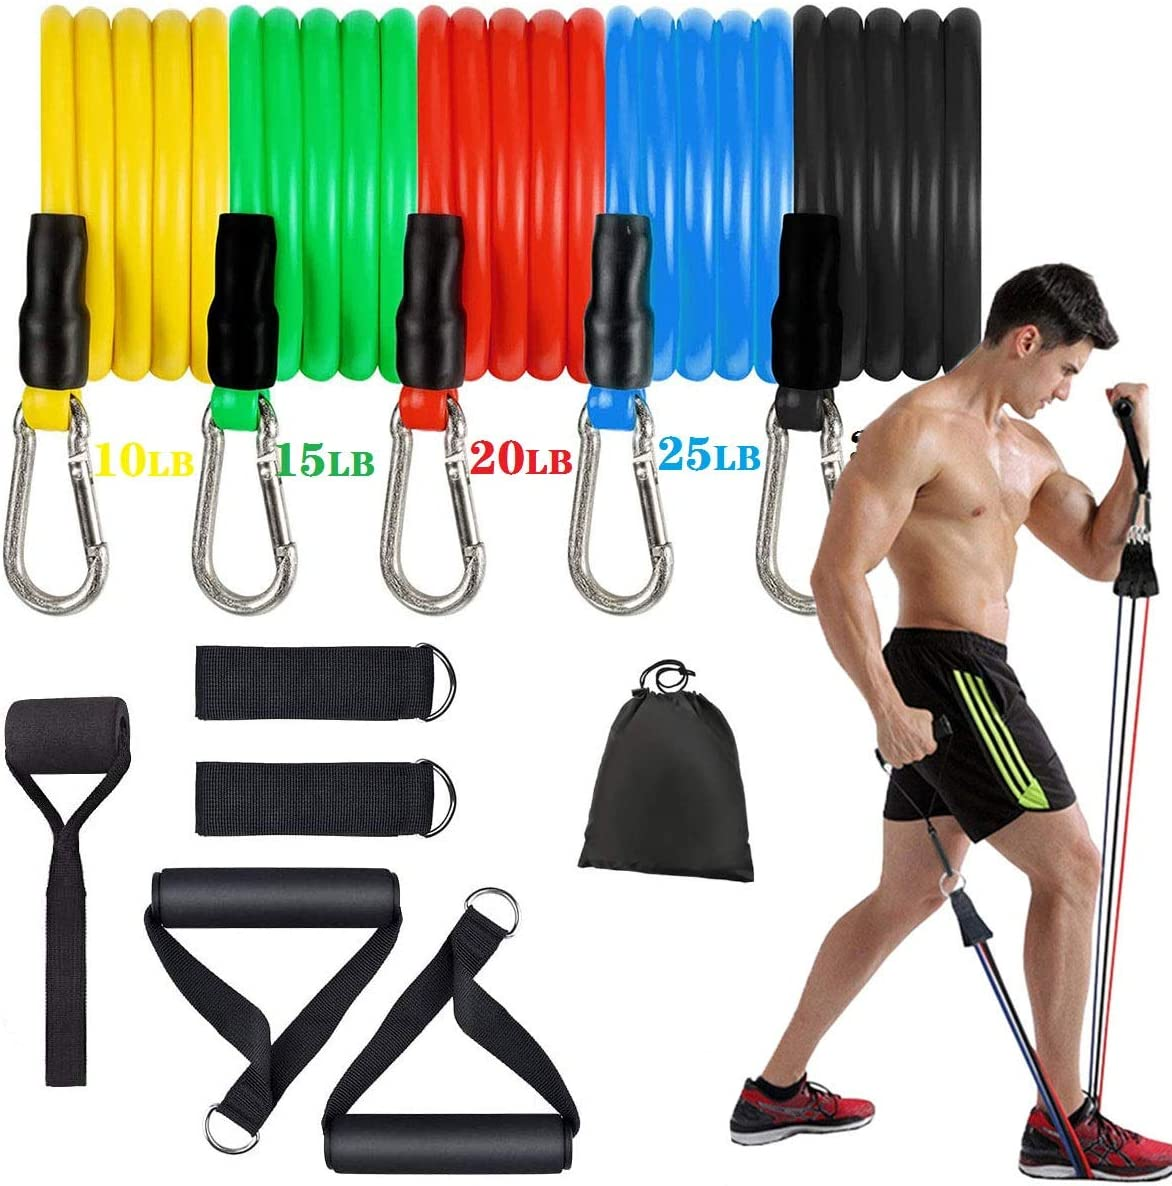 SOARRUCY Workout Bands Home Gym Equipment 11pcs Exercise Bands for Strength Training for Men Women Resistance Bands for Fitness with Handles Yoga Training